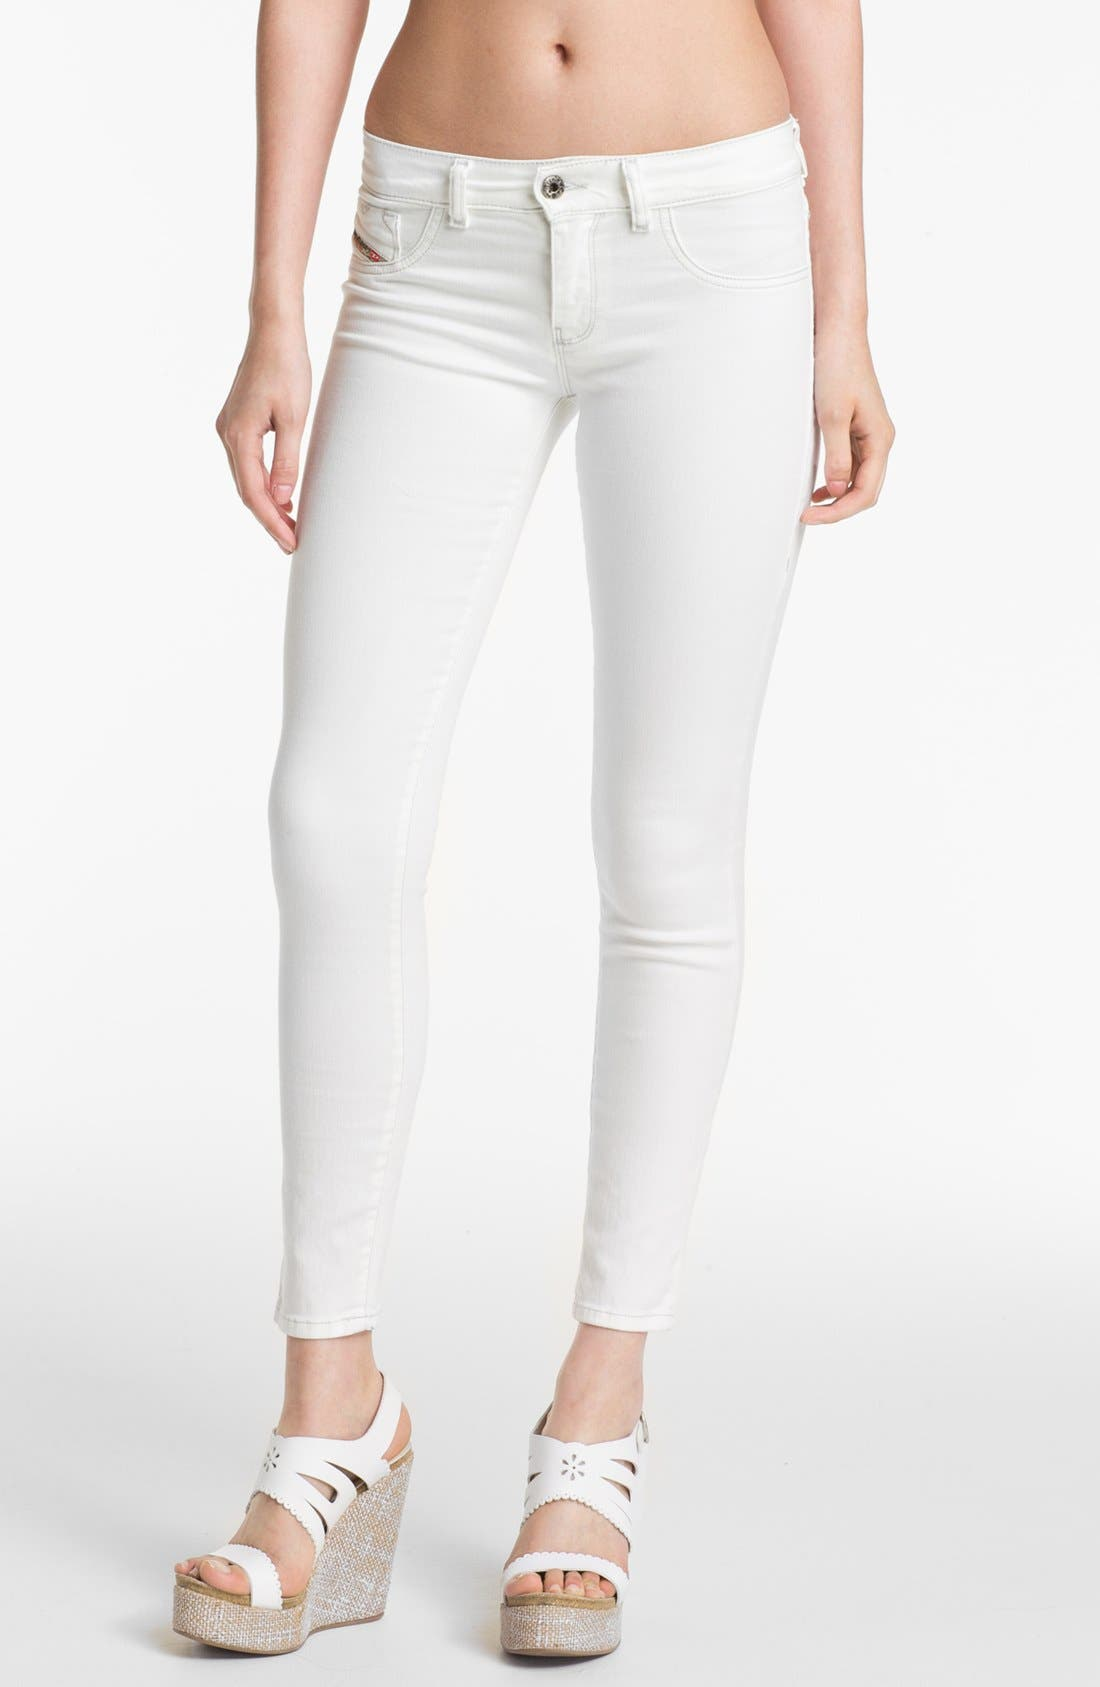 Alternate Image 1 Selected - DIESEL® 'Livier' Ankle Skinny Jeans (White)